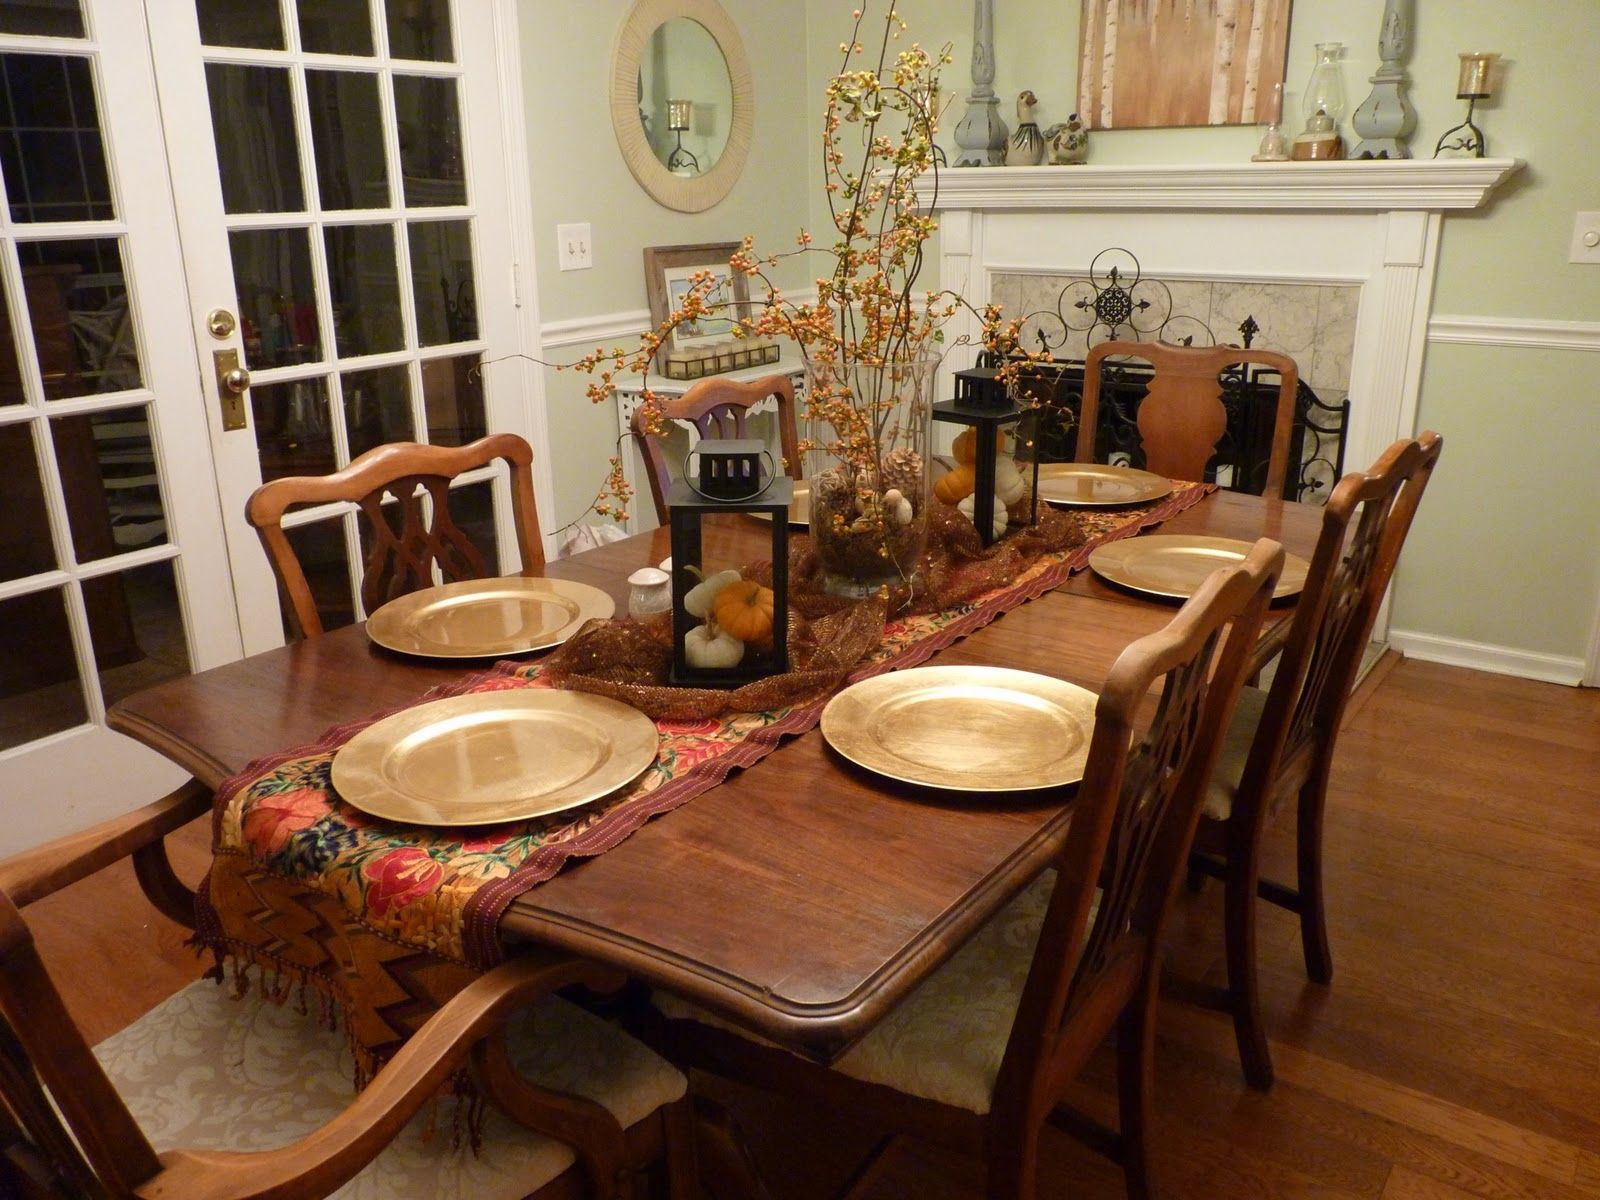 Classy Wooden Rustic Dining Table With 6 Dining Chairs Feat Silver